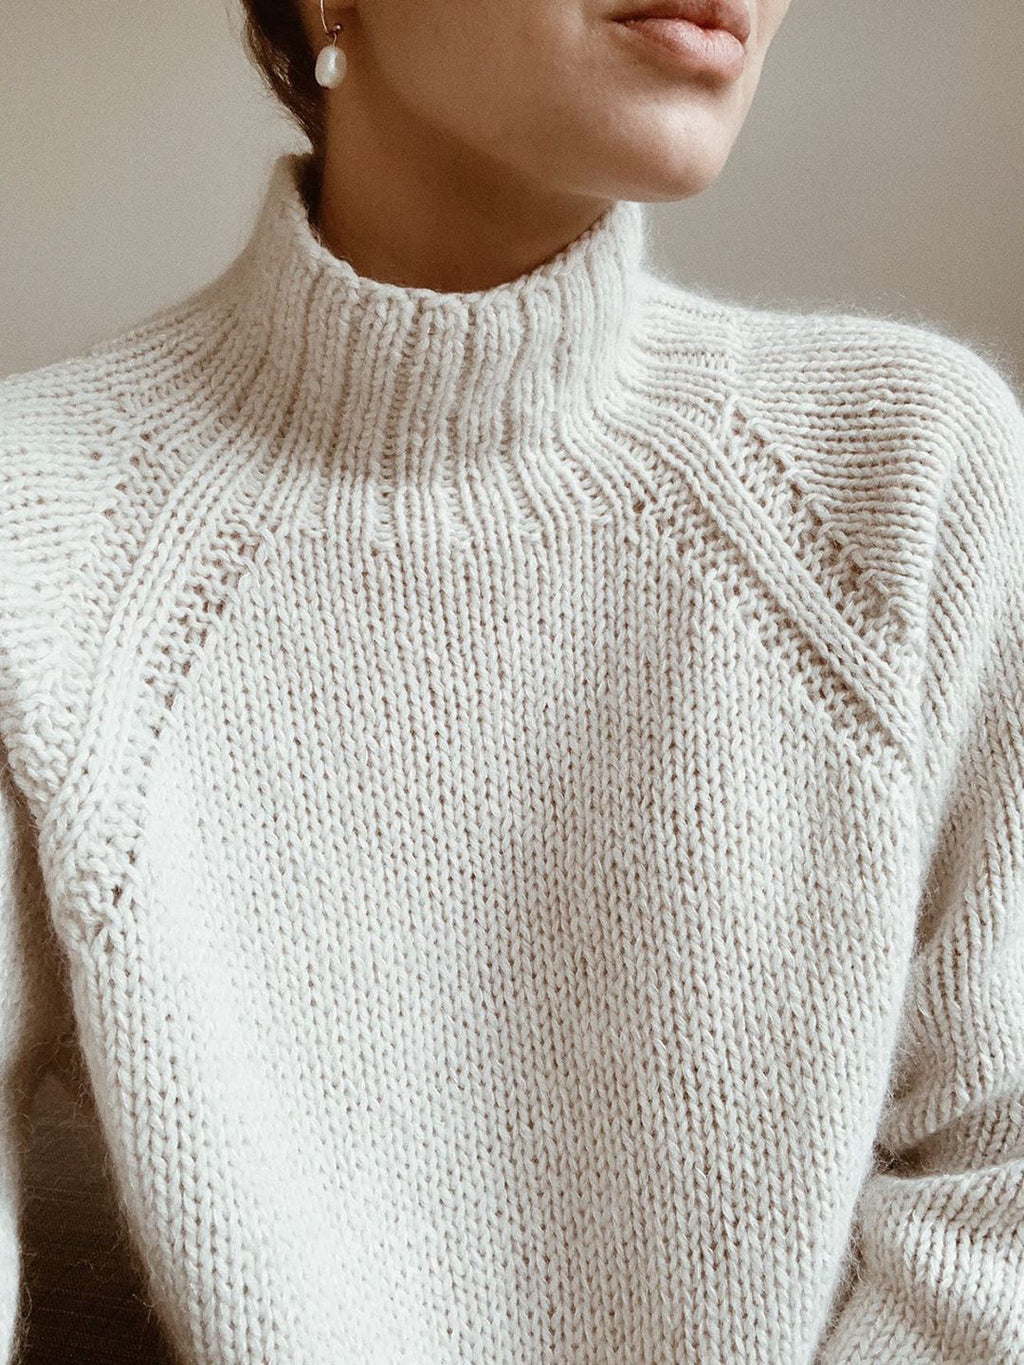 Sweater No. 9 - DE